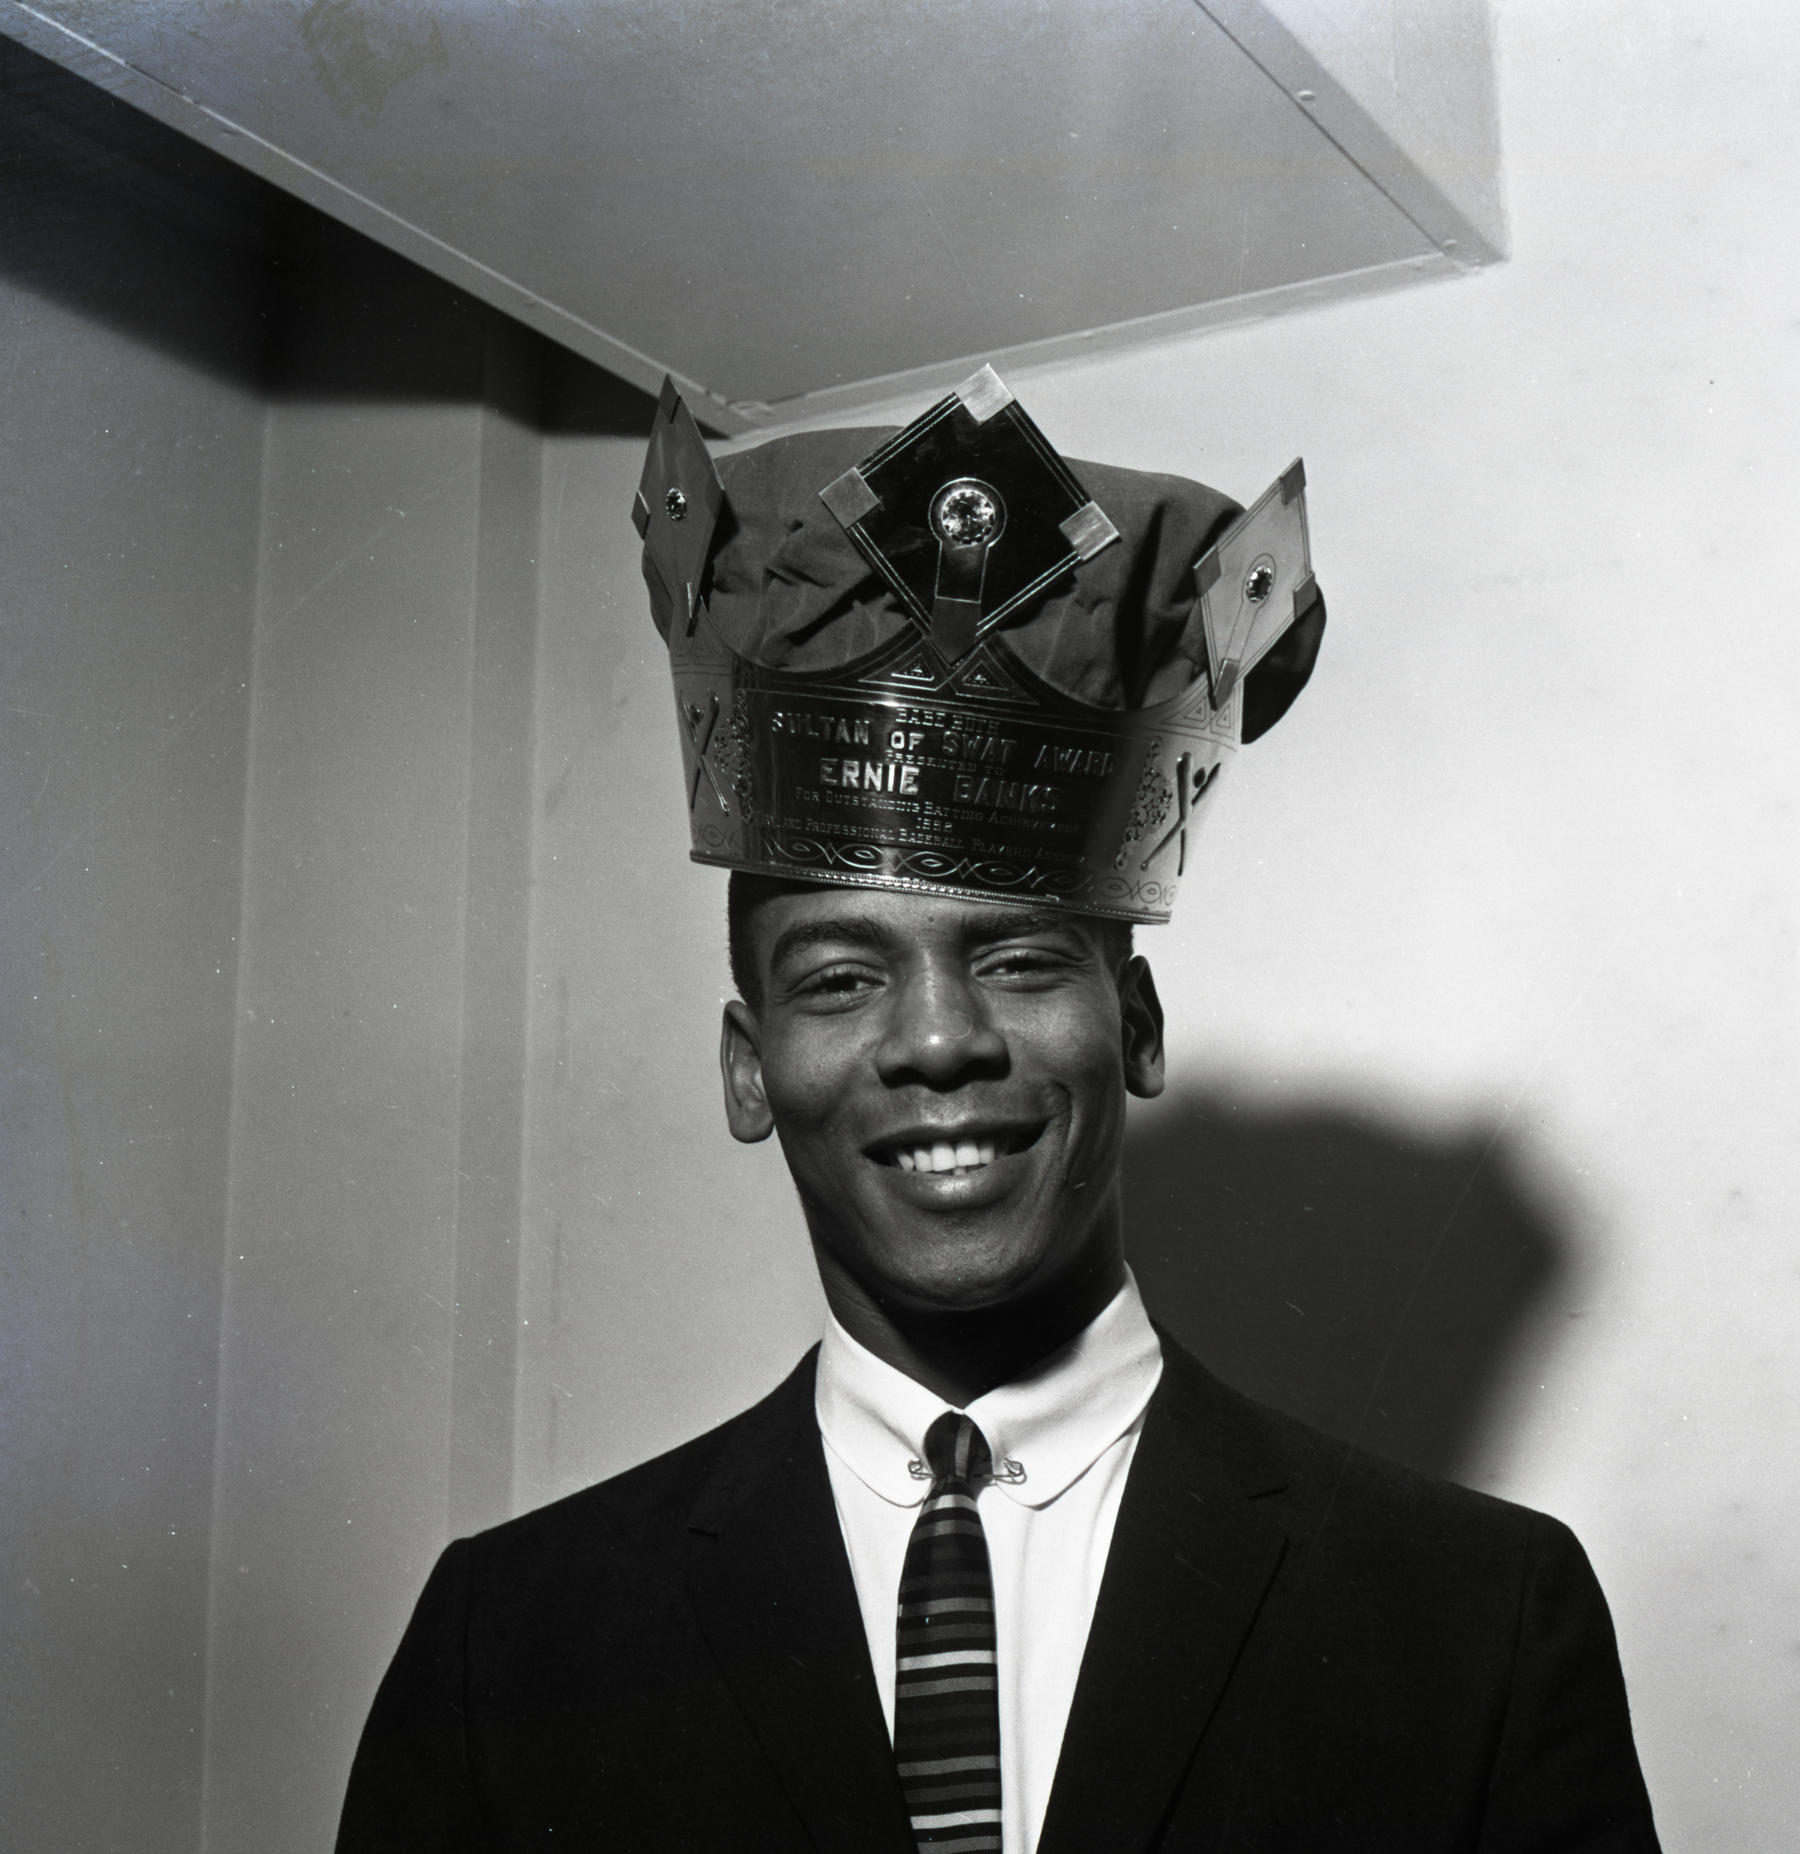 """Chicago Cubs Ernie Banks wearing the """"Sultan of Swat"""" crown for highest slugging percentage in 1958. BL-471.70.1 (National Baseball Hall of Fame Library)"""